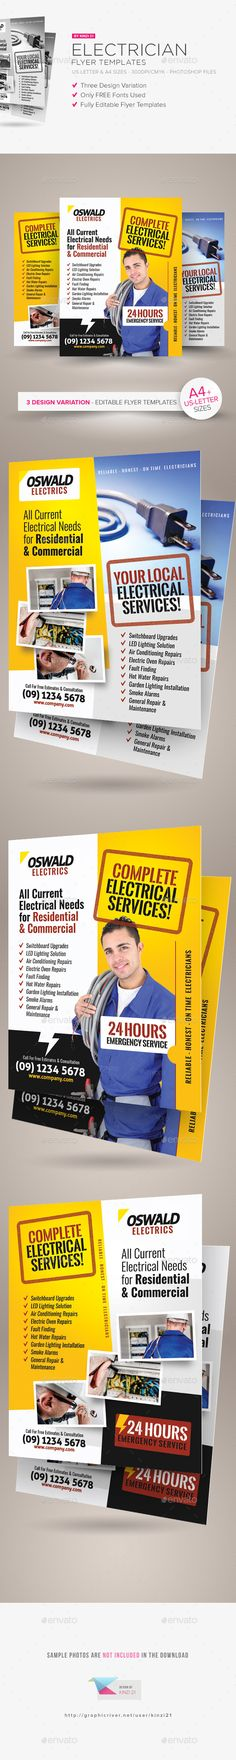 Electrician Flyer Templates  #electrical #plumber #house • Click here to download ! http://graphicriver.net/item/electrician-flyer-templates/15249792?ref=pxcr